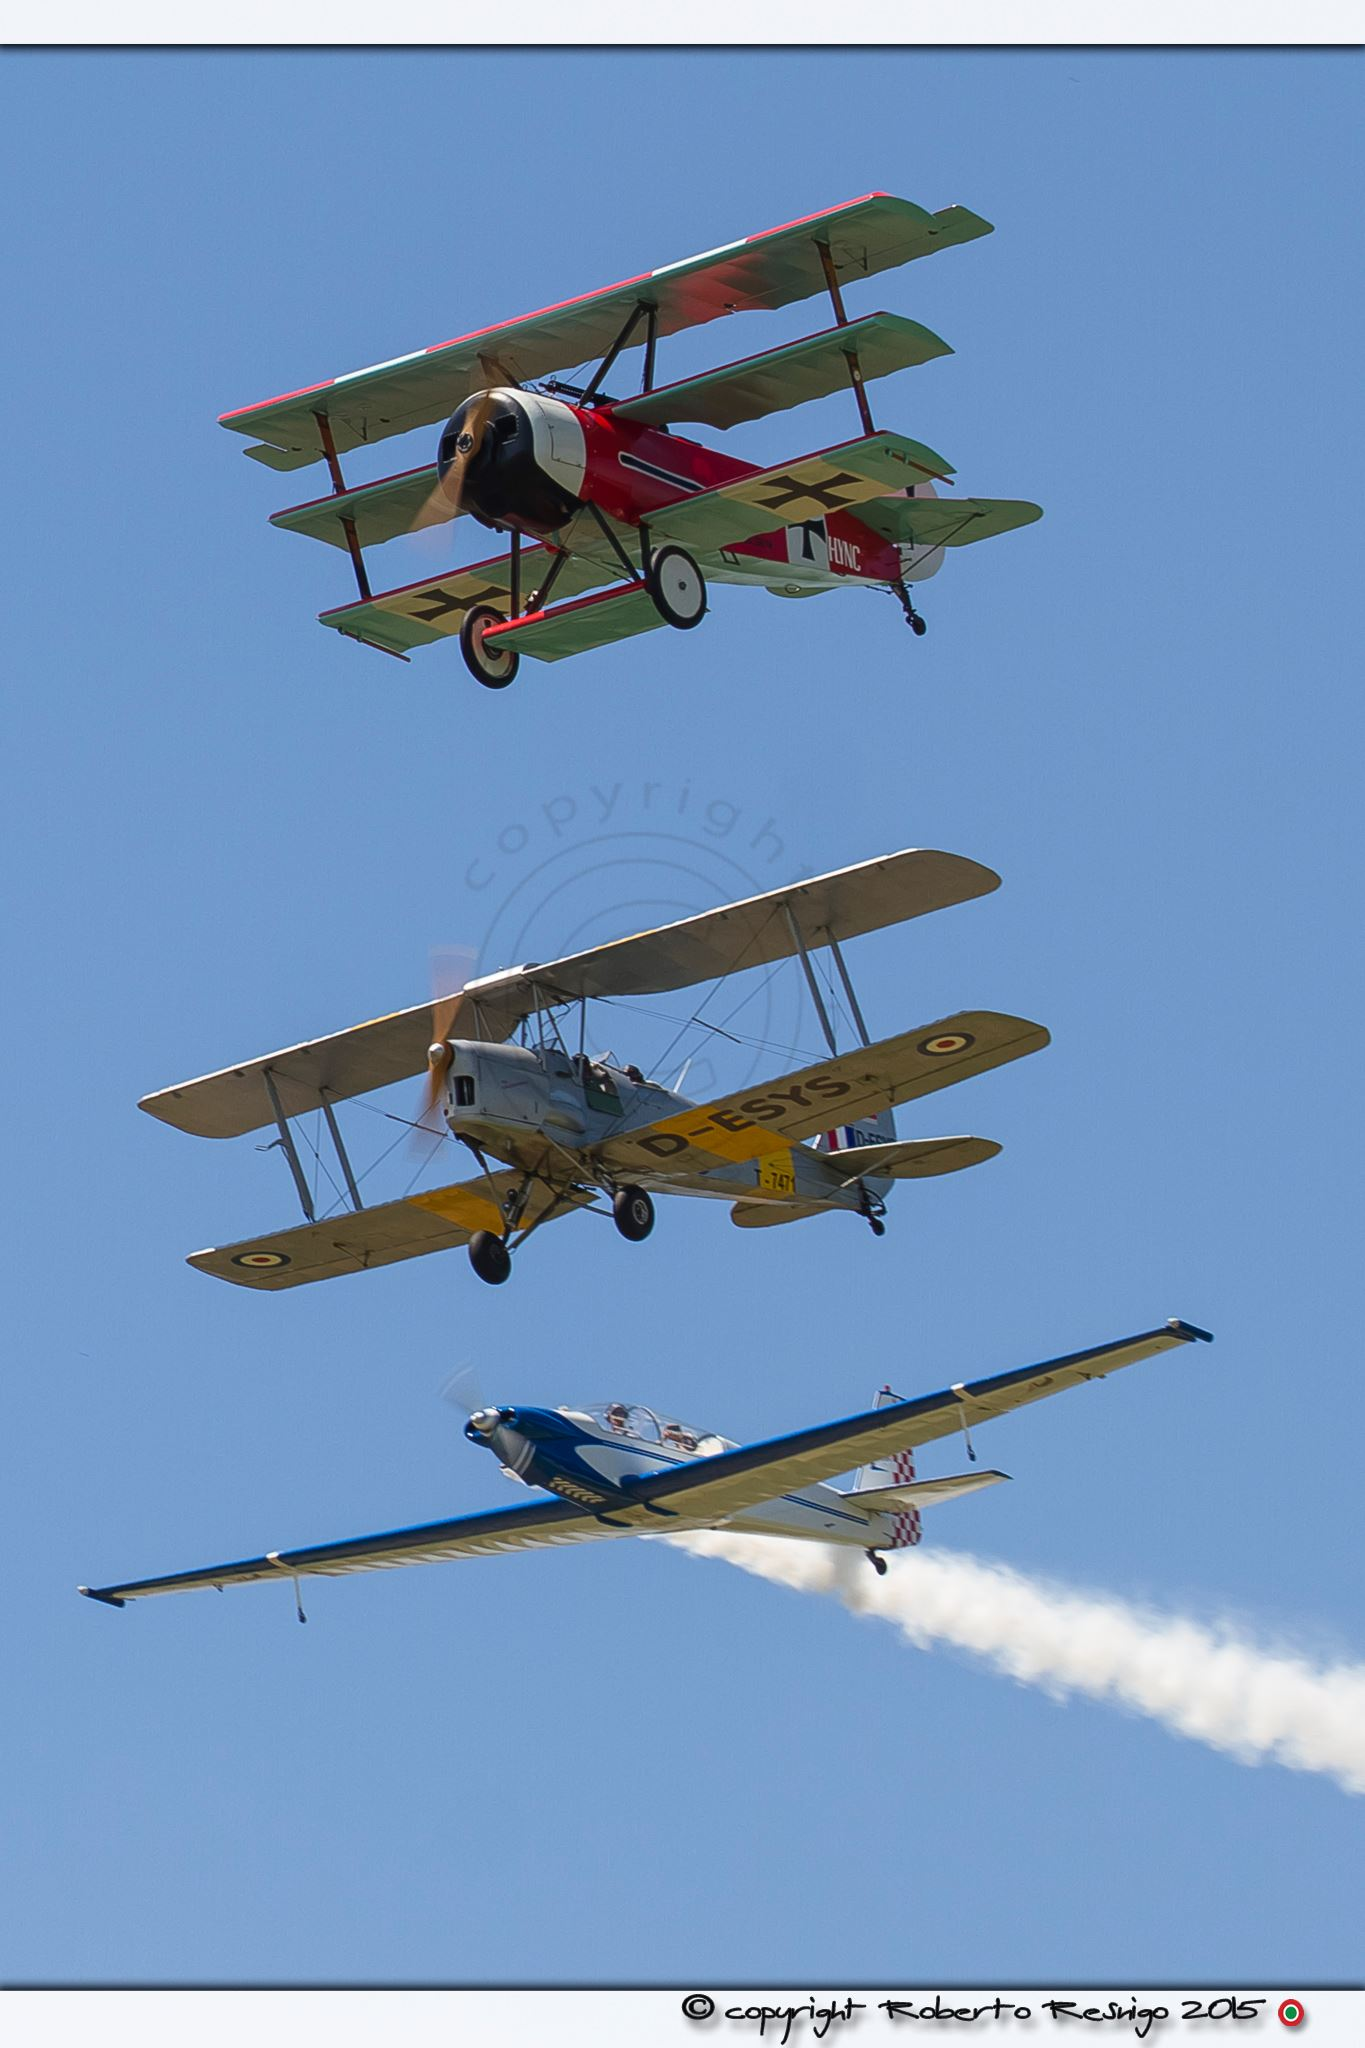 Montagnana Flyparty 2015 ph. Resnigo